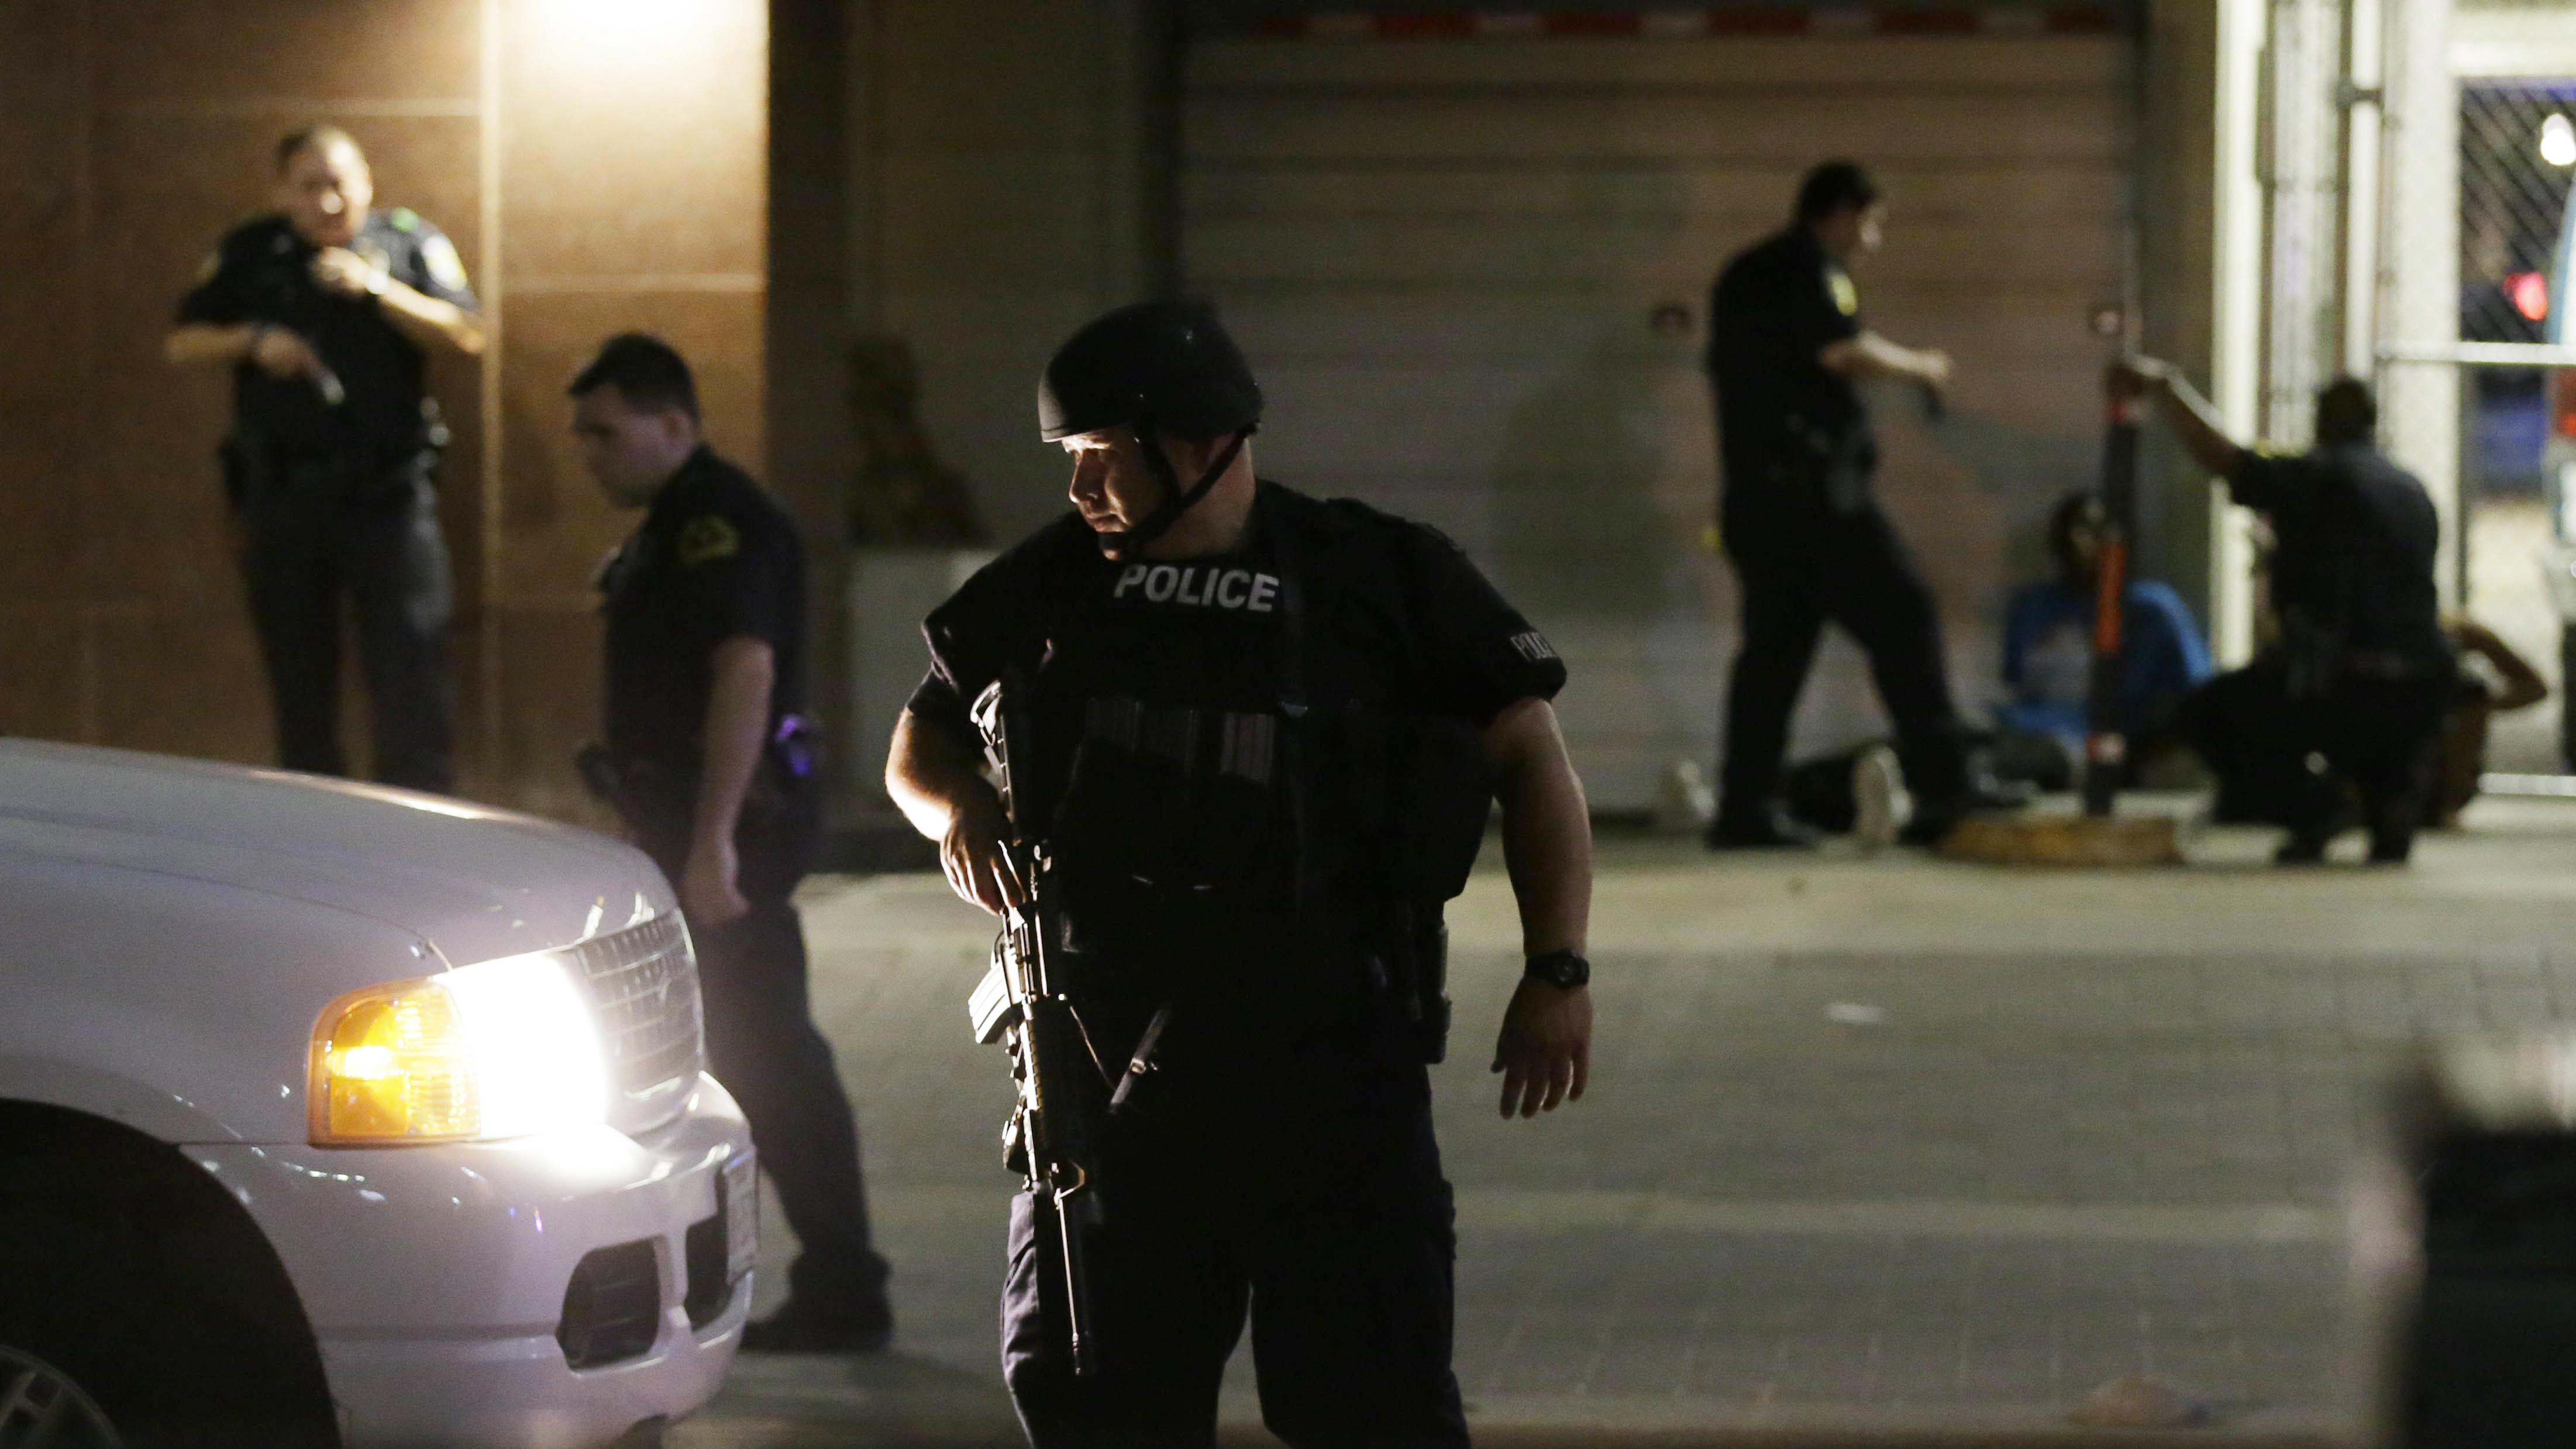 Dallas police detain a driver after several police officers were shot Thursday evening in downtown Dallas. Snipers shot police officers — killing several — during a peaceful protest, the city's police chief said at a news conference. (Photo by L.M. Otero/AP)